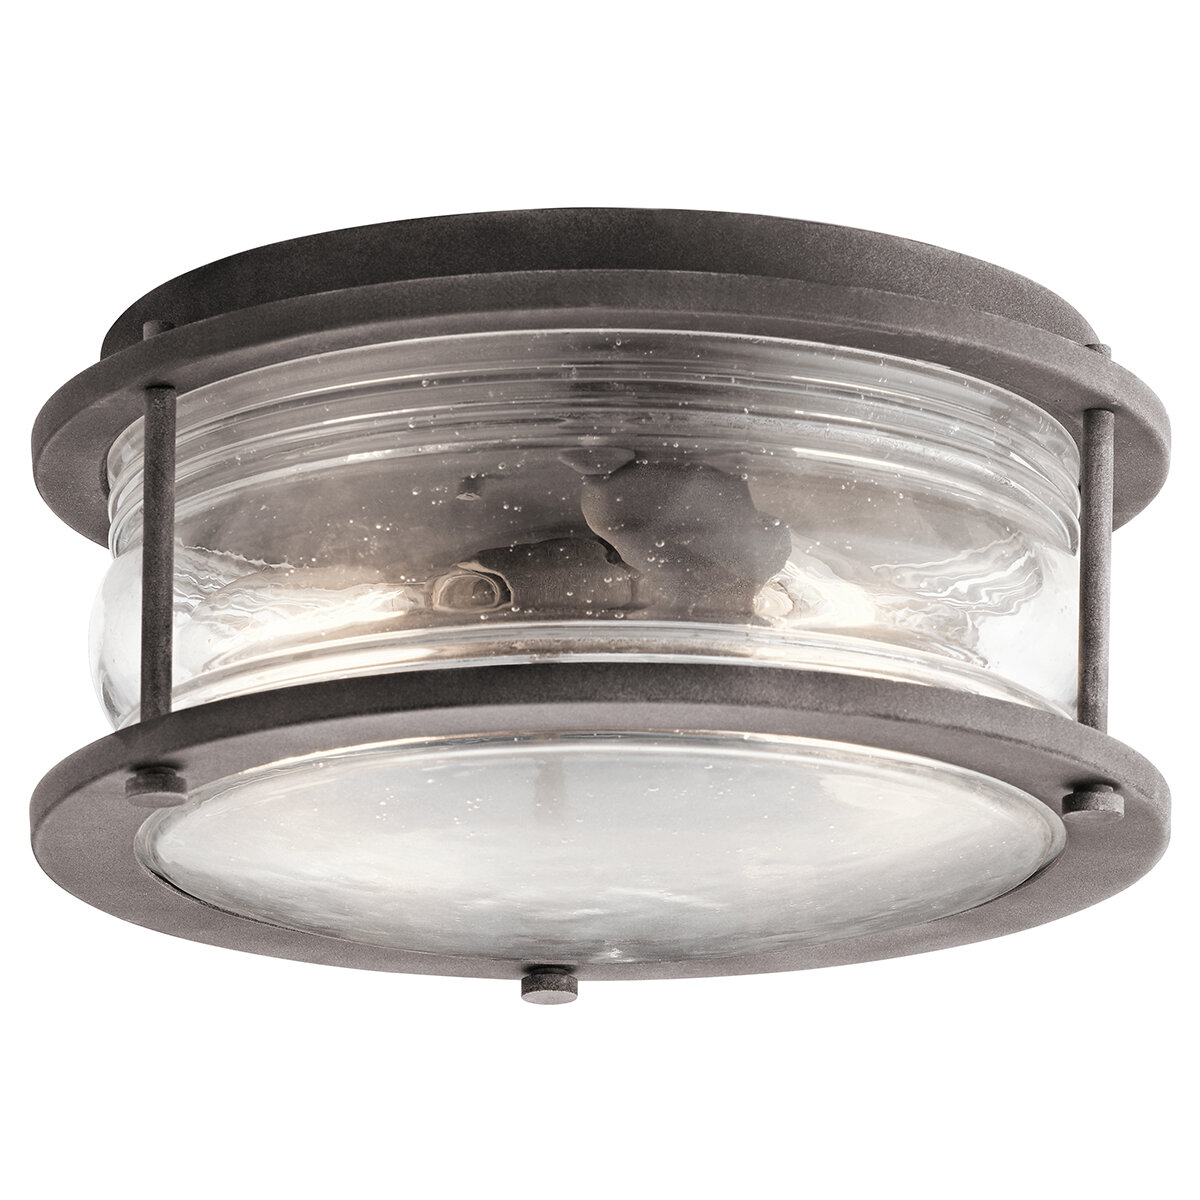 West Elk 2 Light Outdoor Flush Mount